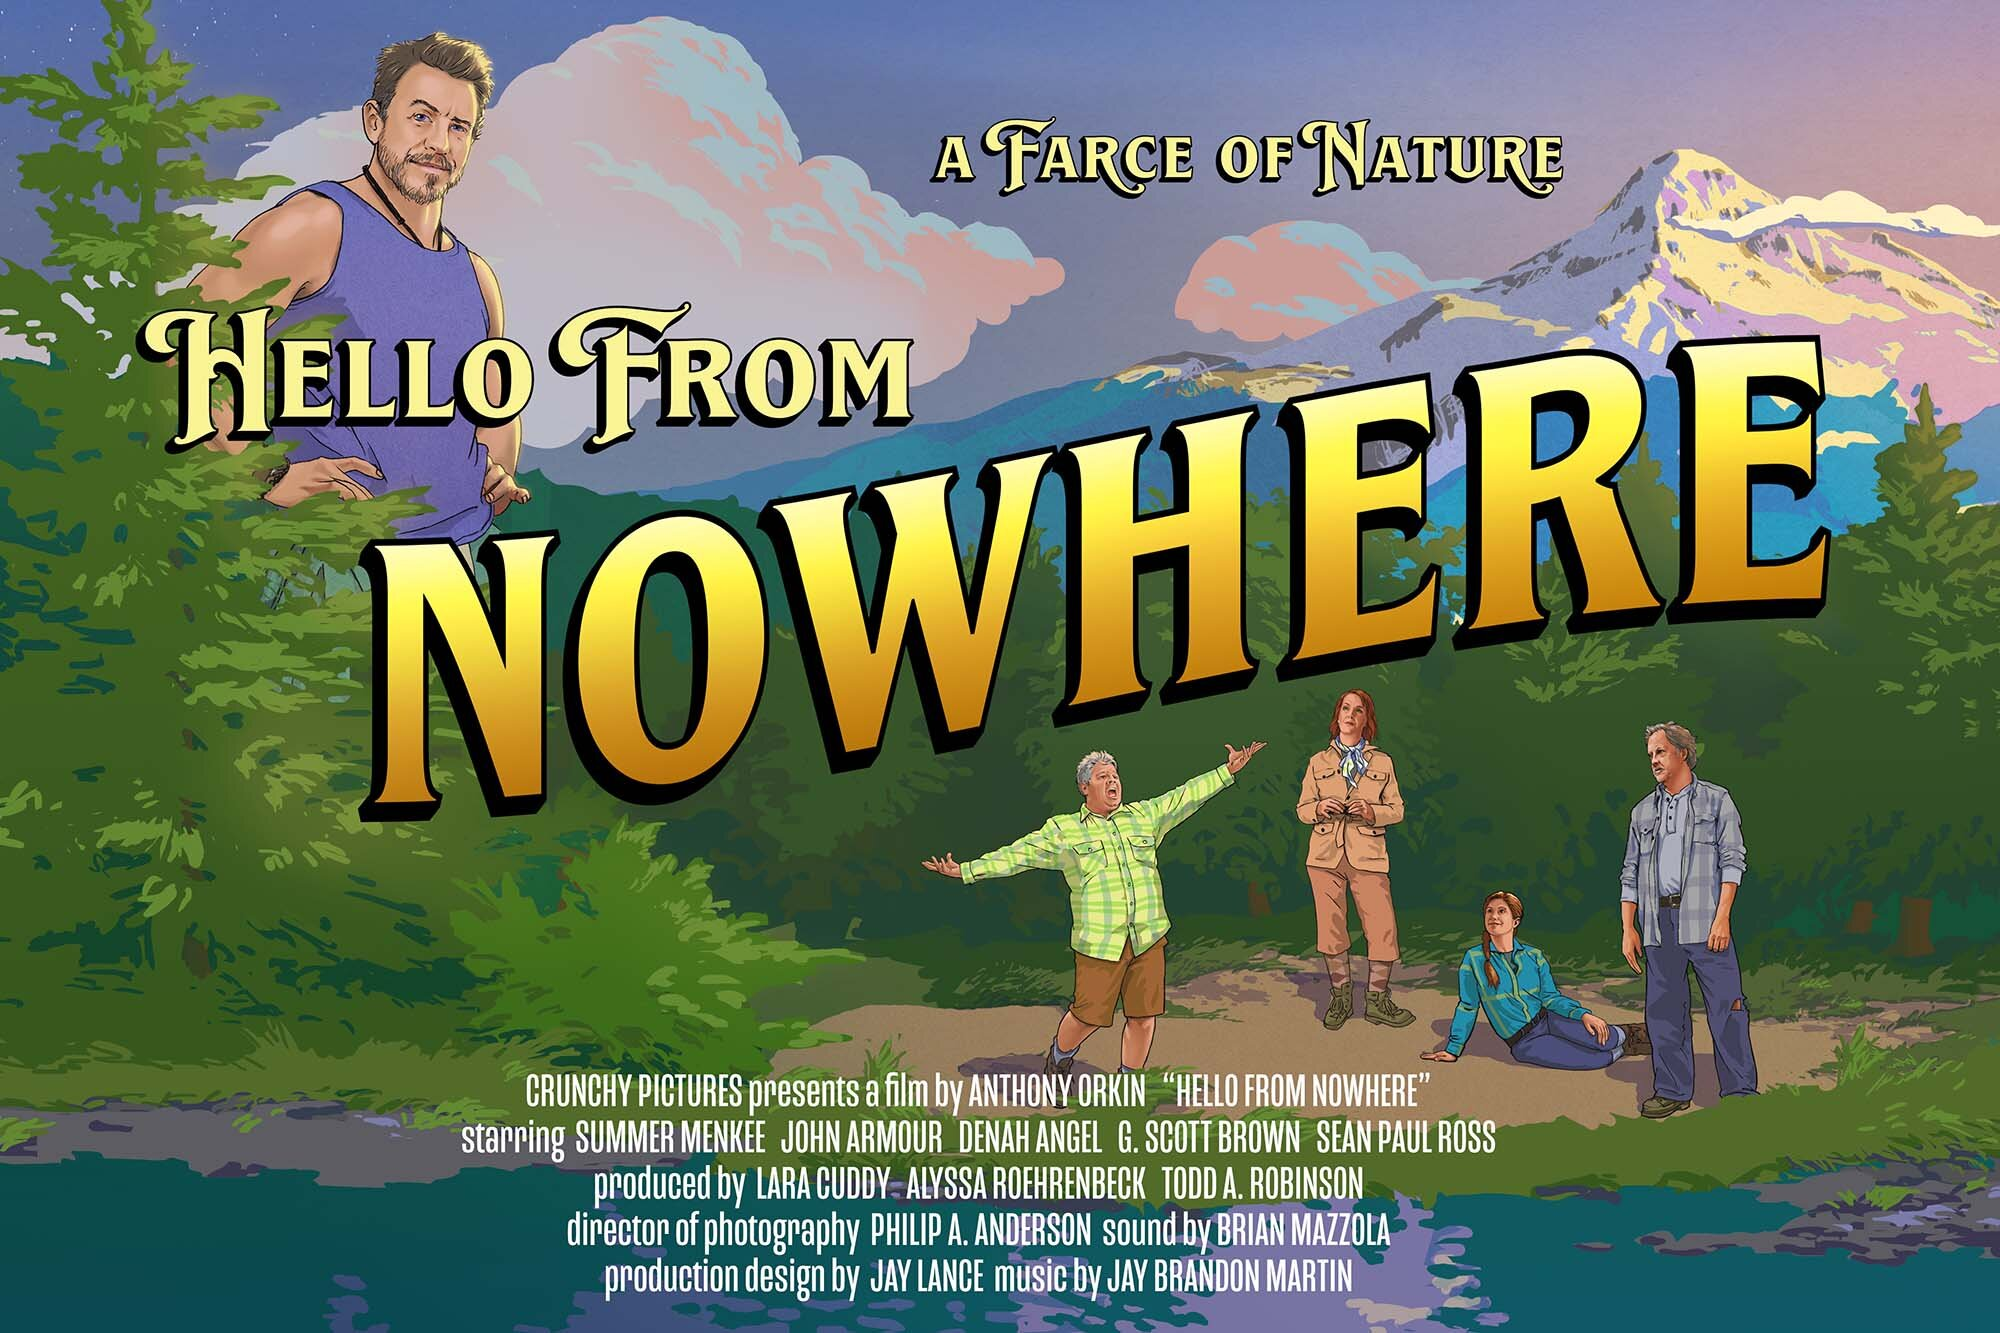 HELLO FROM NOWHERE is the Laugh-out-Loud Musical Thriller You've Been Waiting For